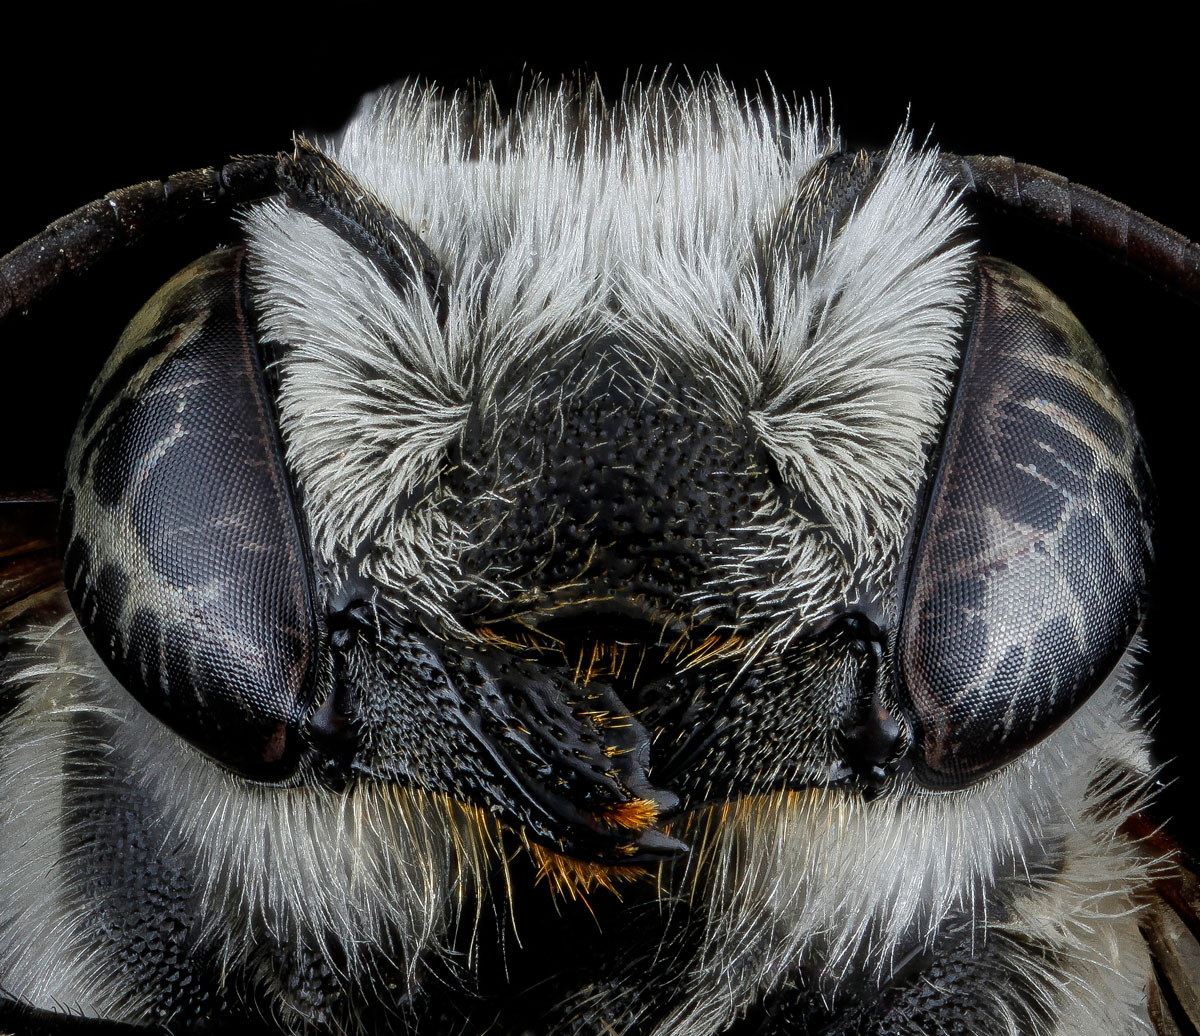 close-ups-of-insect-eyes-by-usgs-biml-25